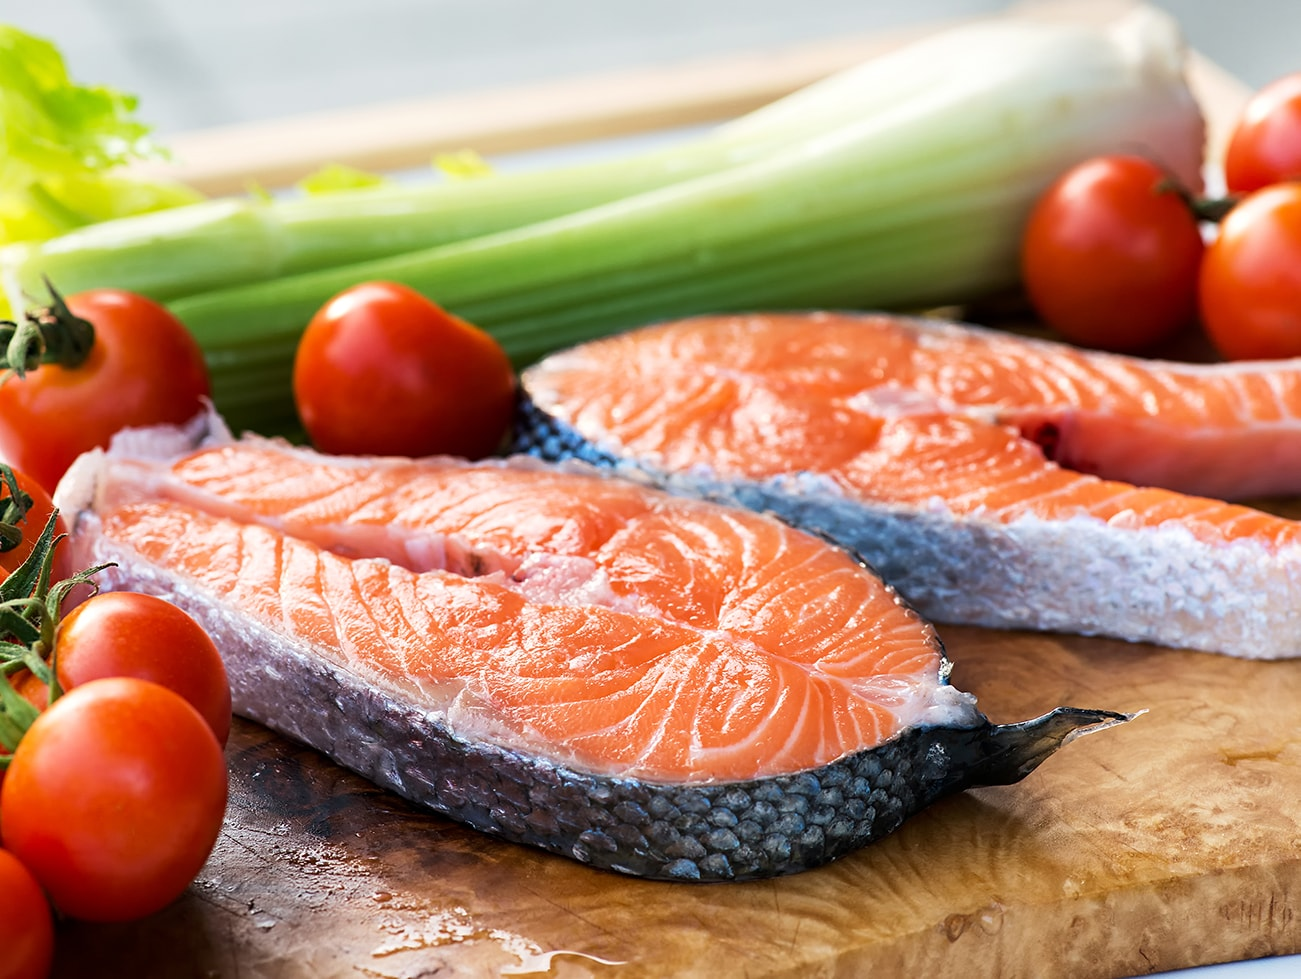 two-slices-of-gourmet-fresh-pink-salmon-1300×979-min